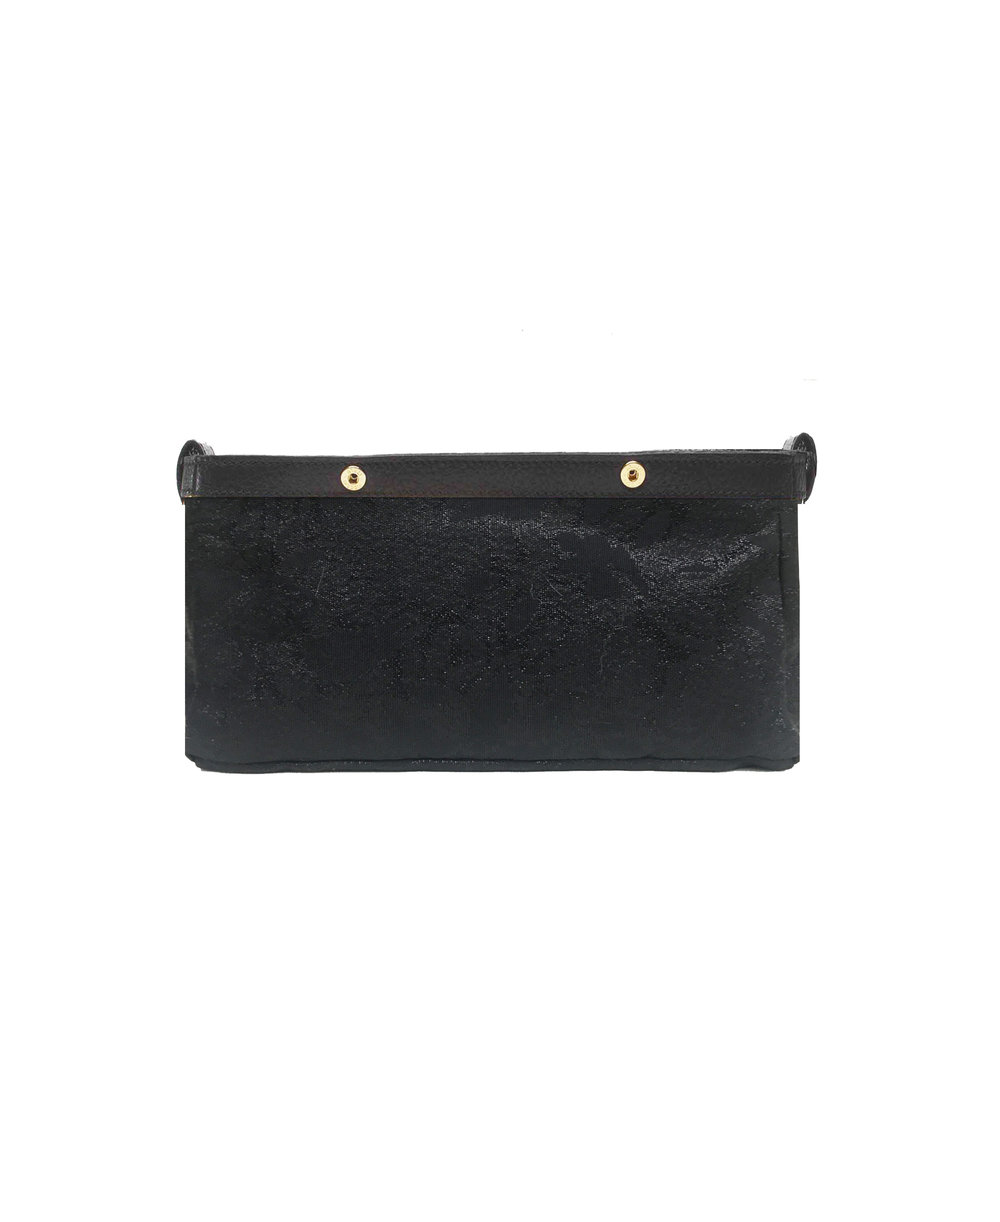 Be Fuller Clutch - Black Inner bag